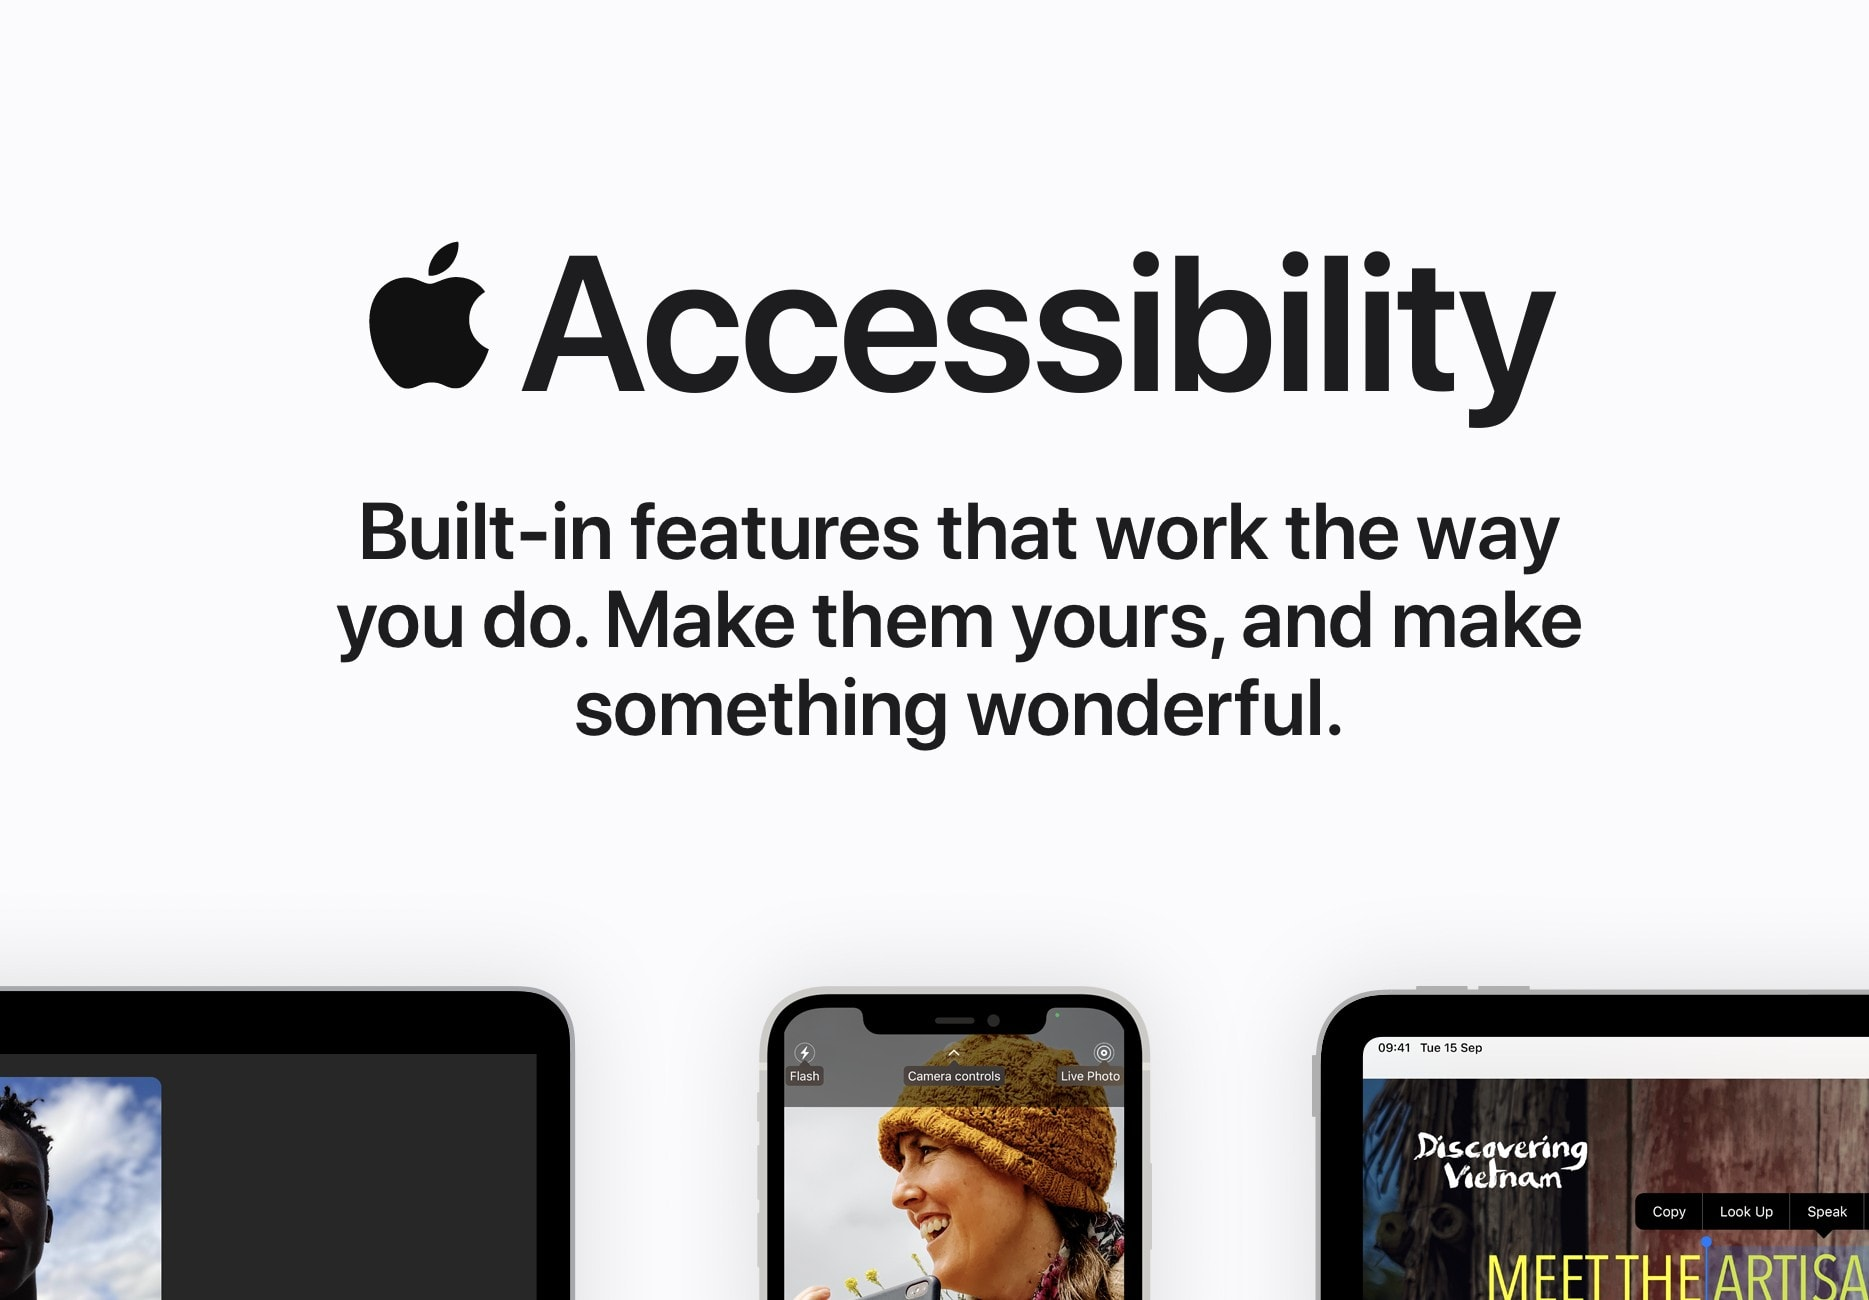 Apple highlights its in-built Accessibility features on overhauled webpage